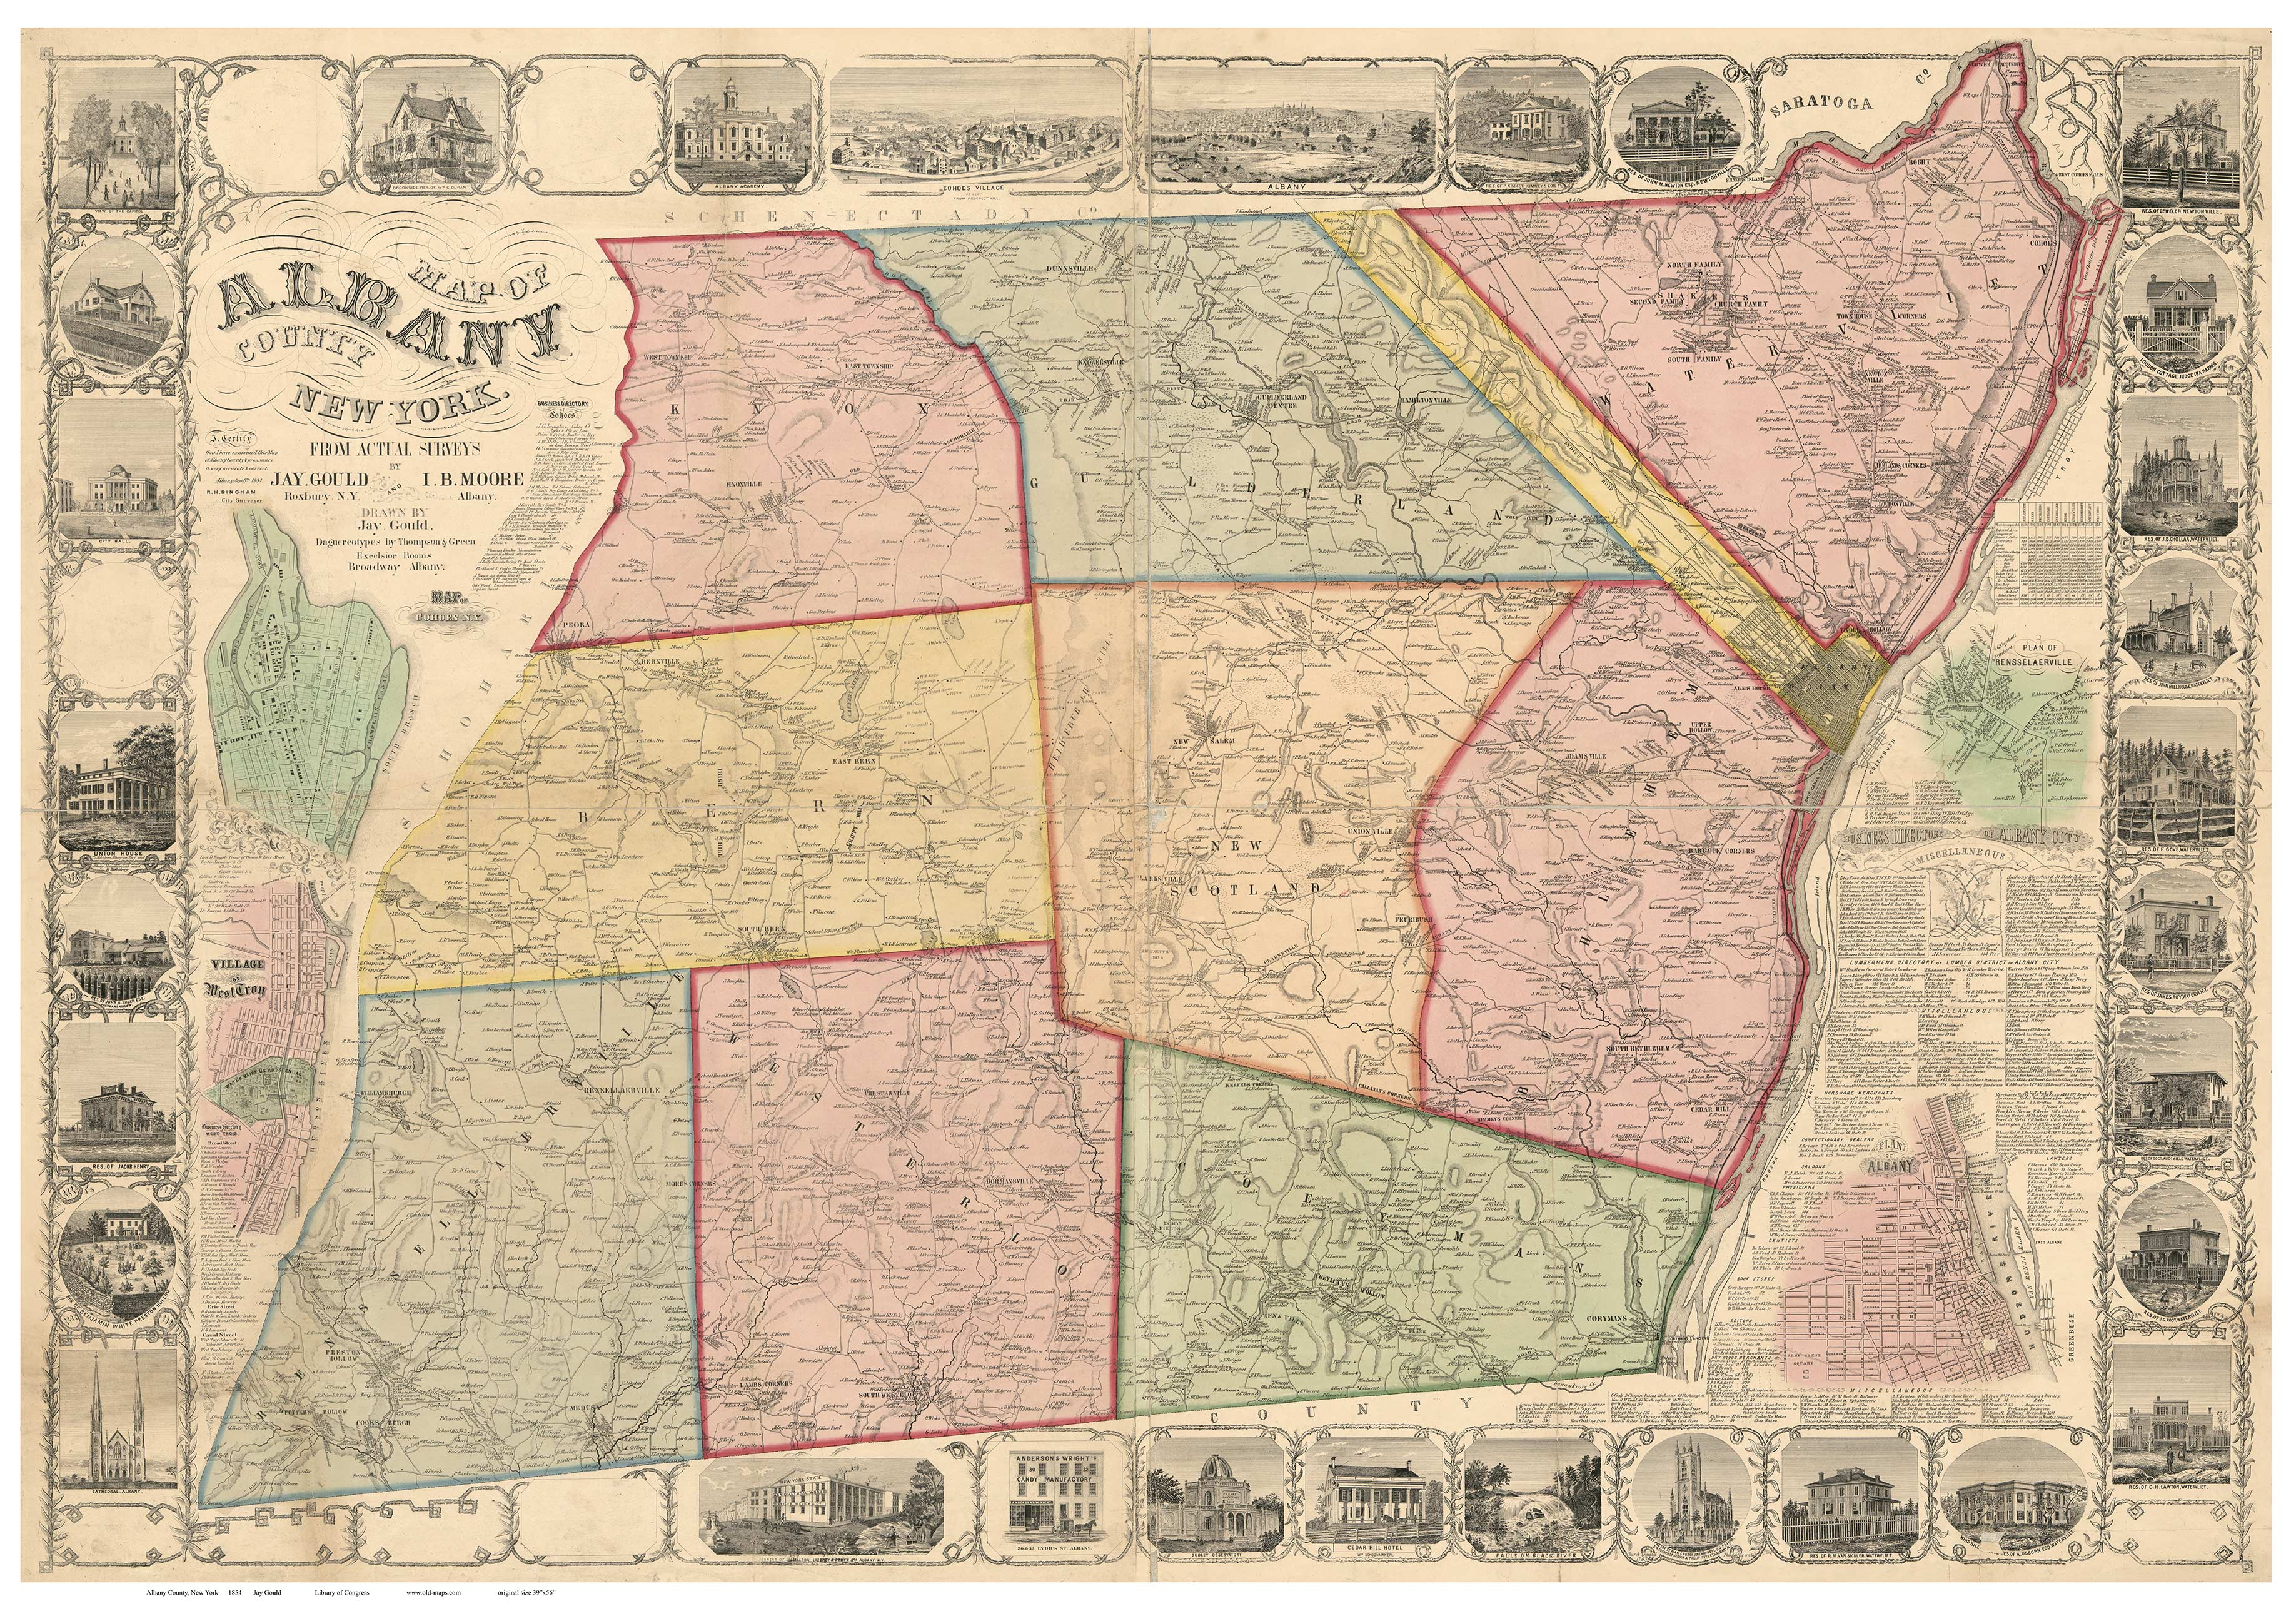 Albany County New York 1854 Old Map Reprint OLD MAPS